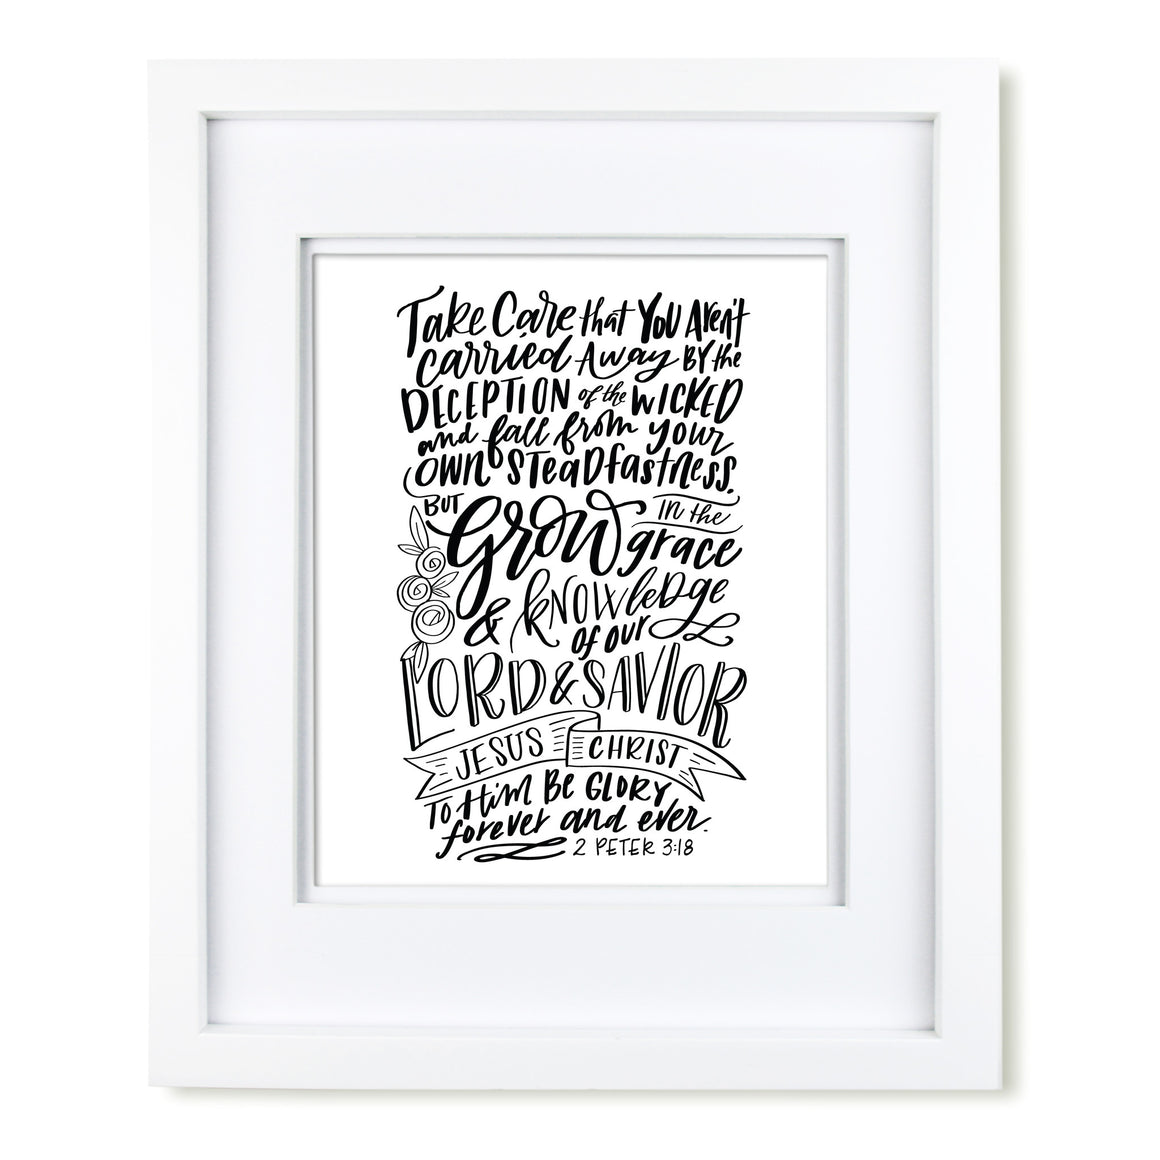 """Grow in Grace"" scripture art print"